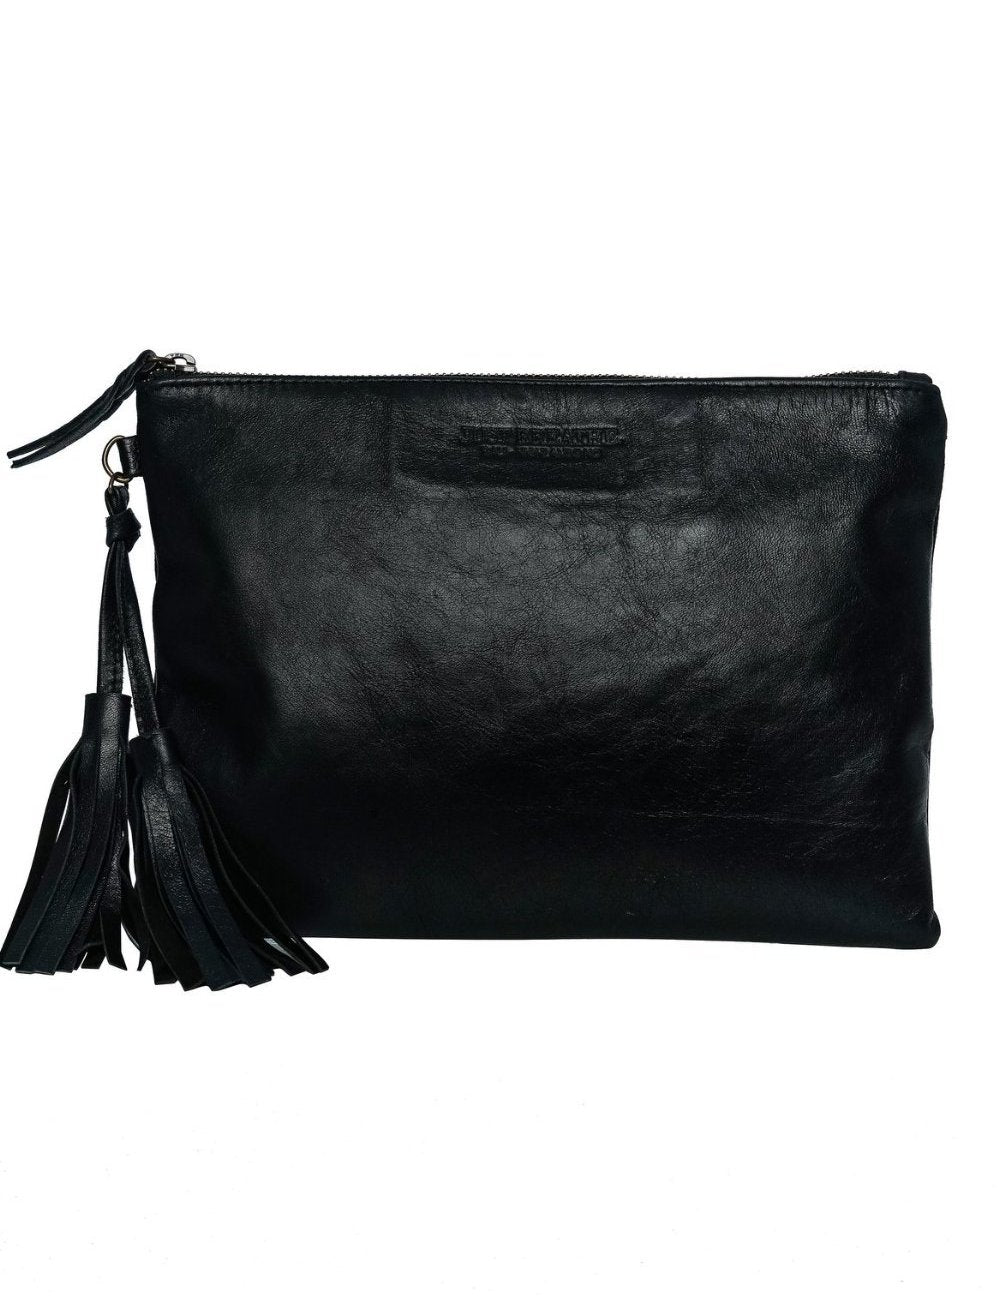 The Clutch ~ Black ~ Leather